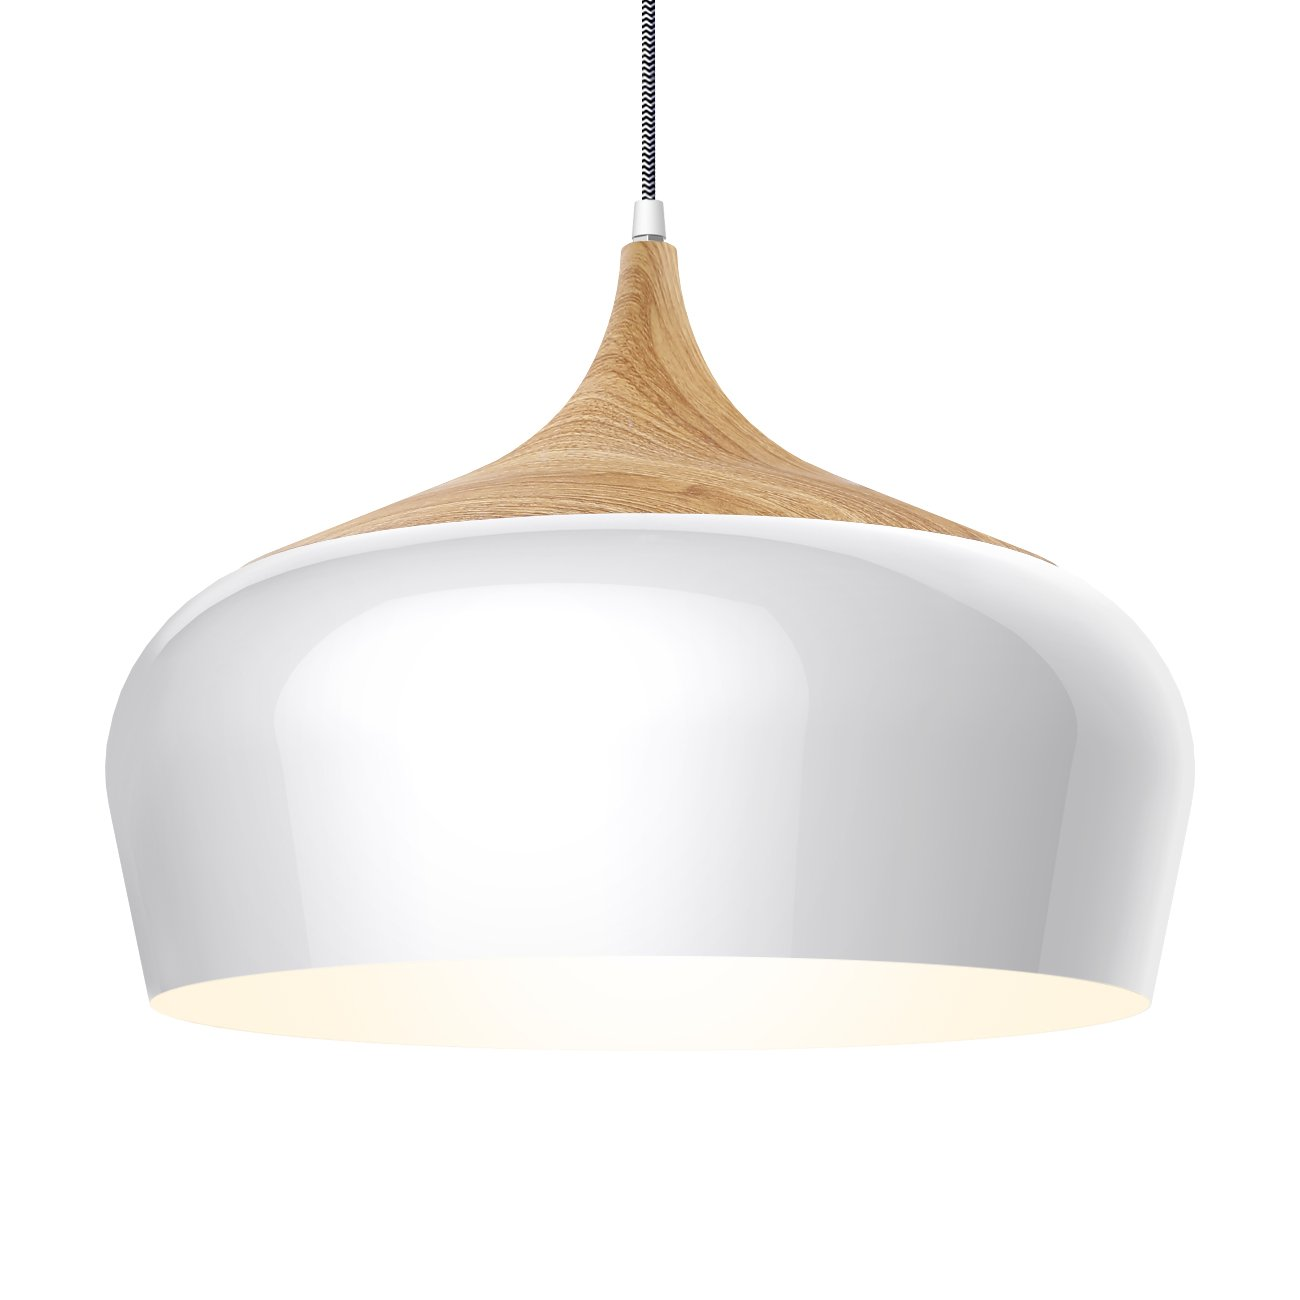 tomons Modern Style Wood Pattern Ceiling Lights, Pendant Light with 8W LED Lamp Bulb for Dining Room, Kitchen, Coffee Bar, Living Room, Study Room - PL1001